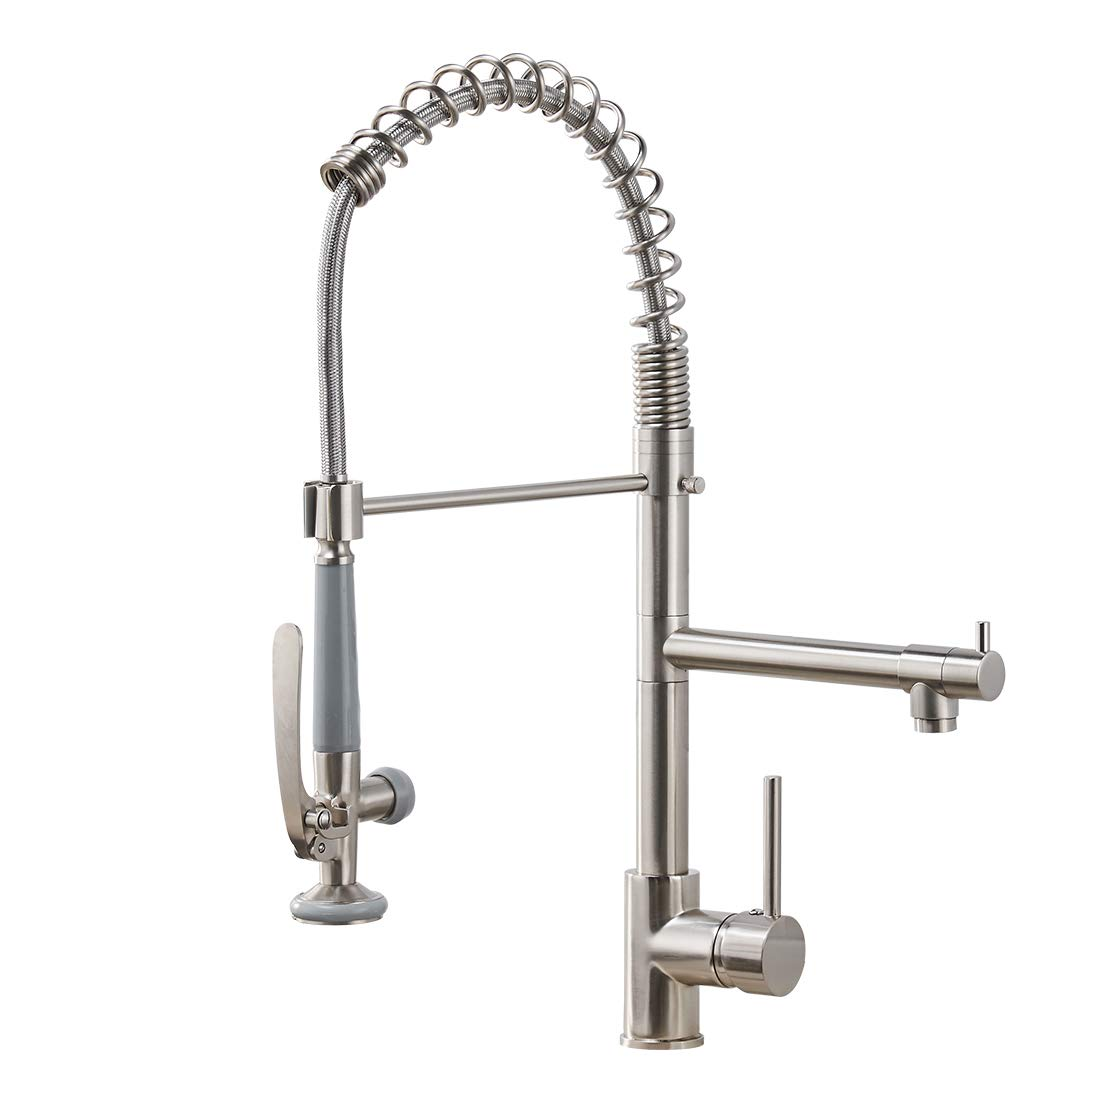 Fapully Commercial Pull Down Kitchen Sink Faucet with Sprayer Brushed Nickel by FAPULLY